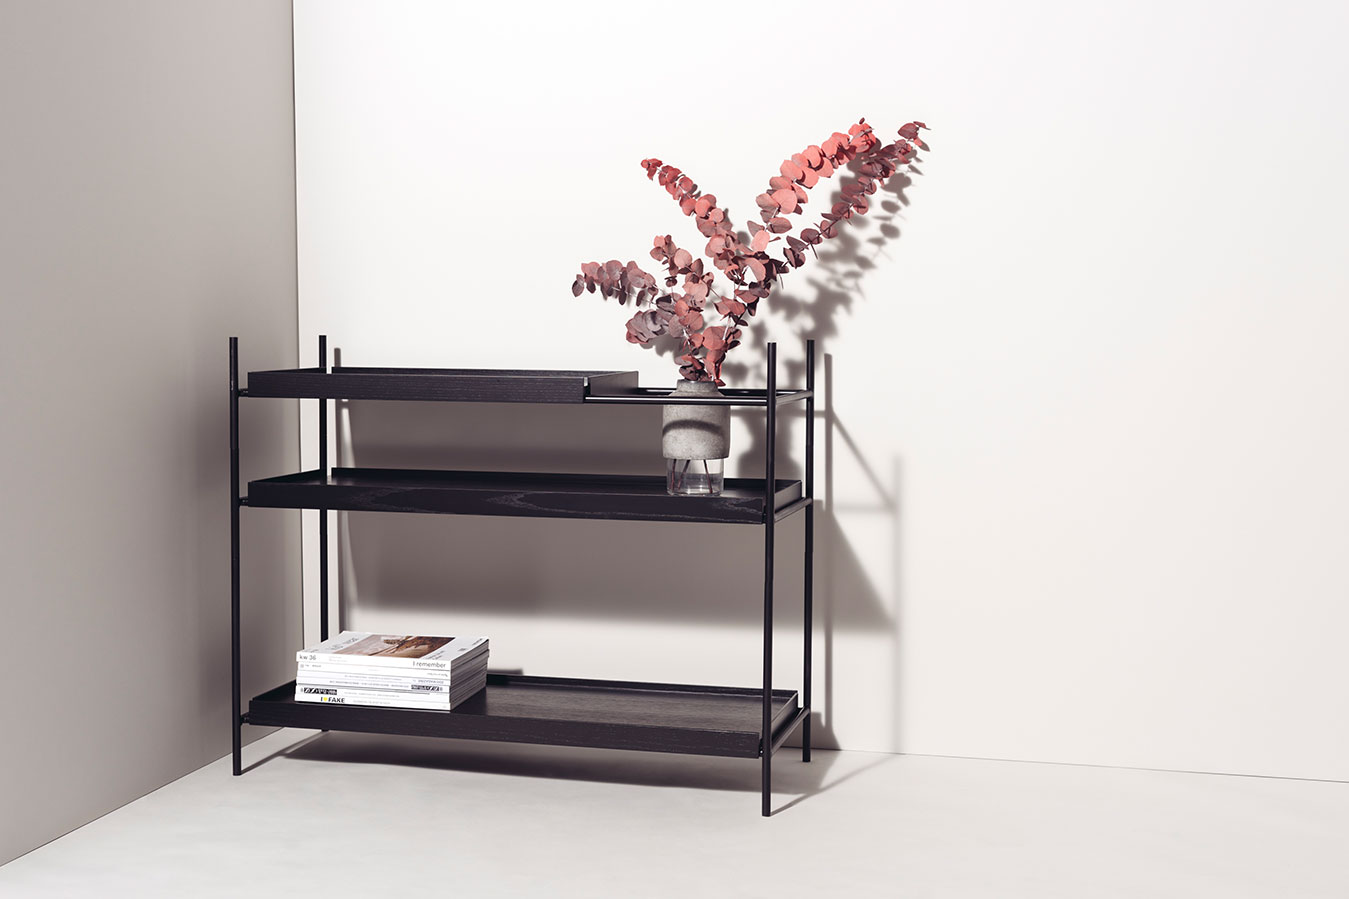 Tray-Shelf woud